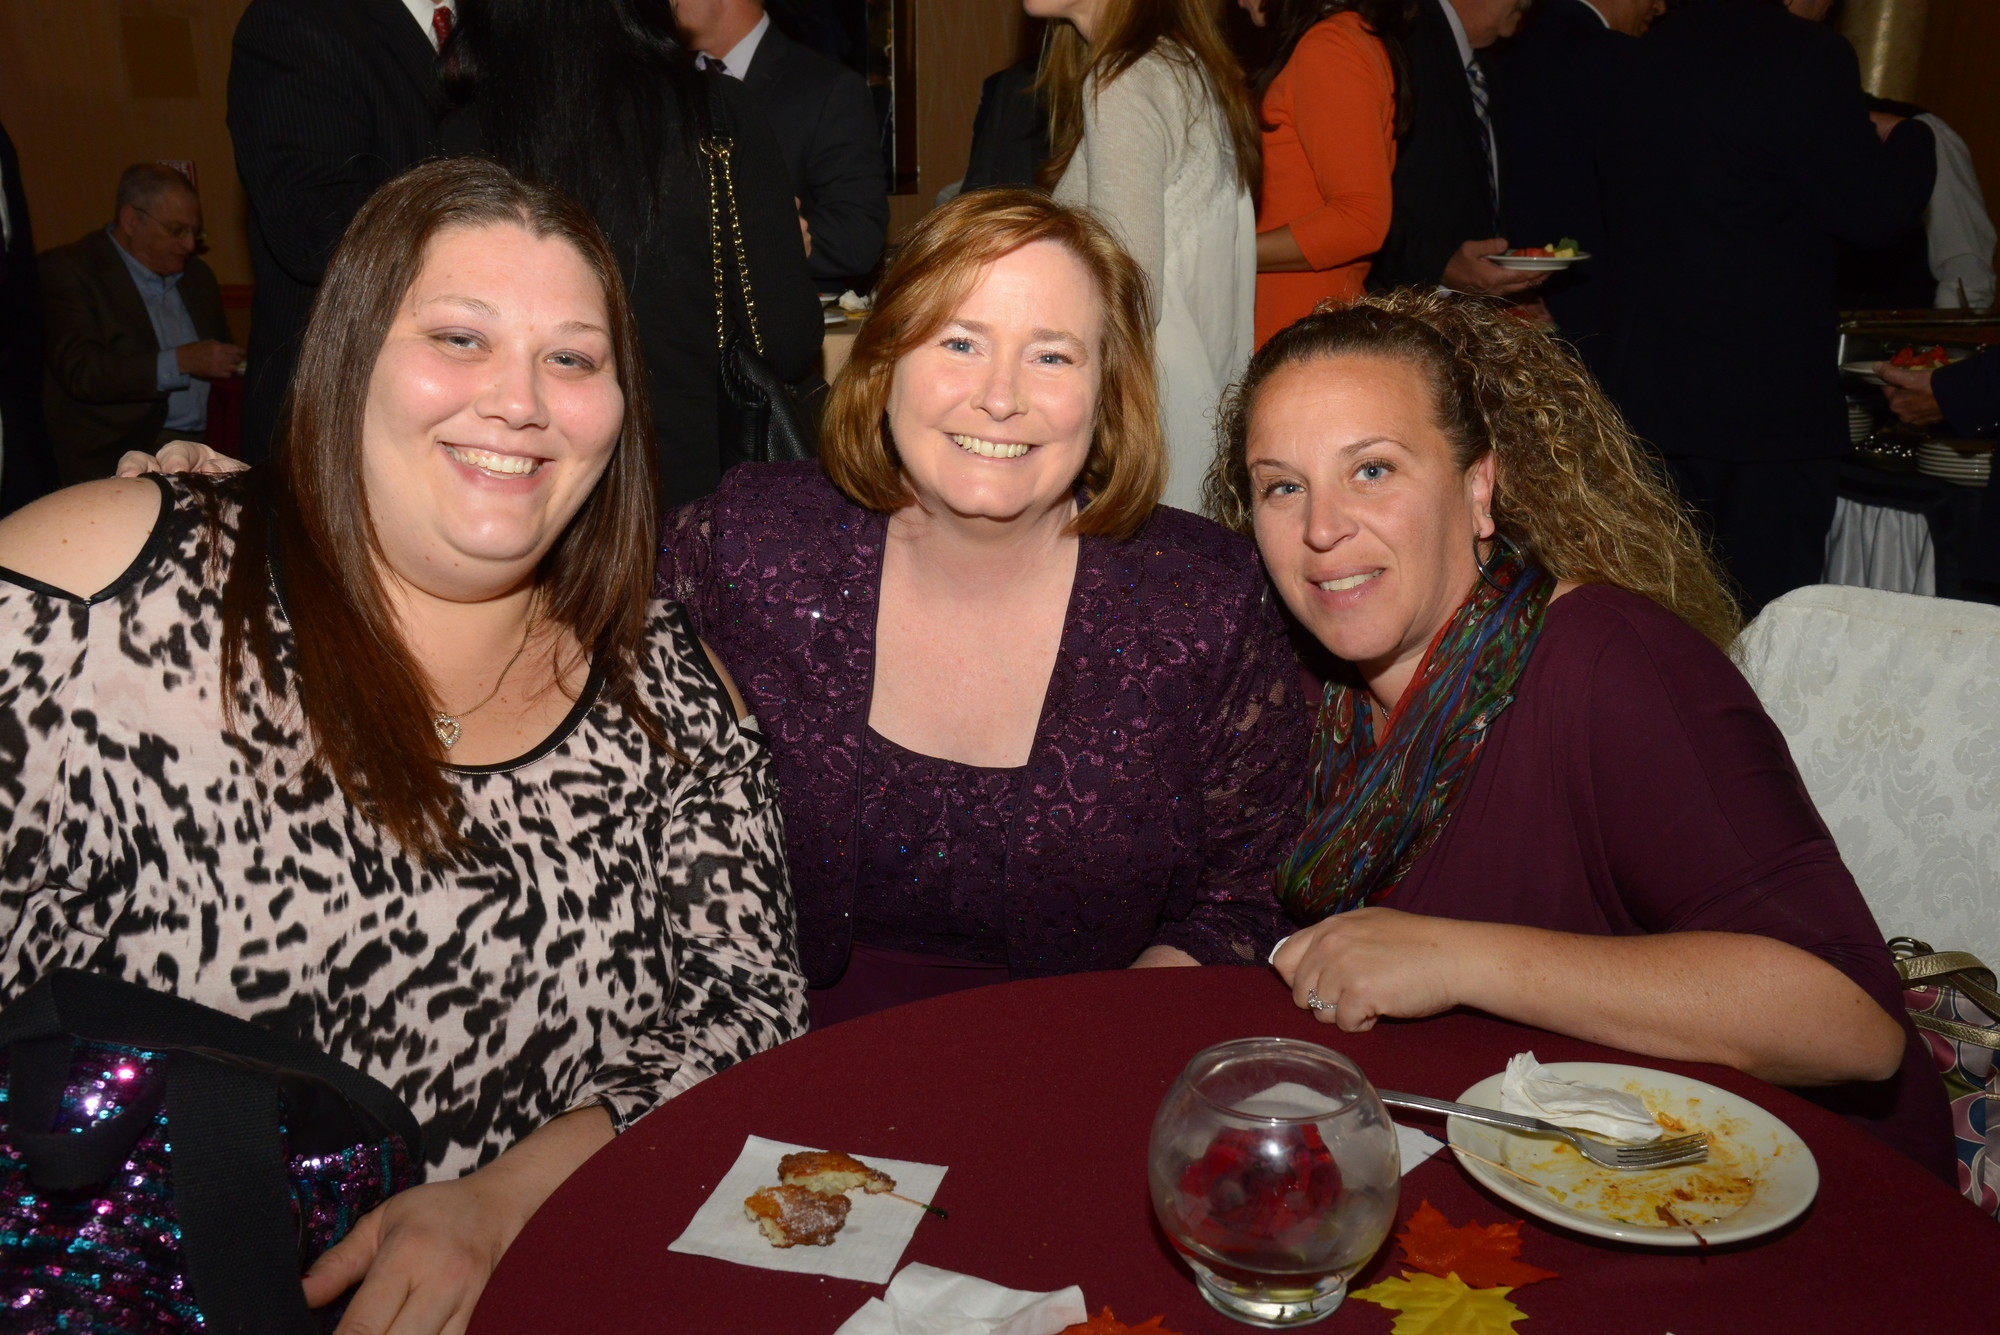 Jenn Carboy, co-president of the Special Education PTA, far left; Elizabeth Beeman, a past president of SEPTA; and Rosamaria Prendergast, PTA president of Oceanside Middle School.